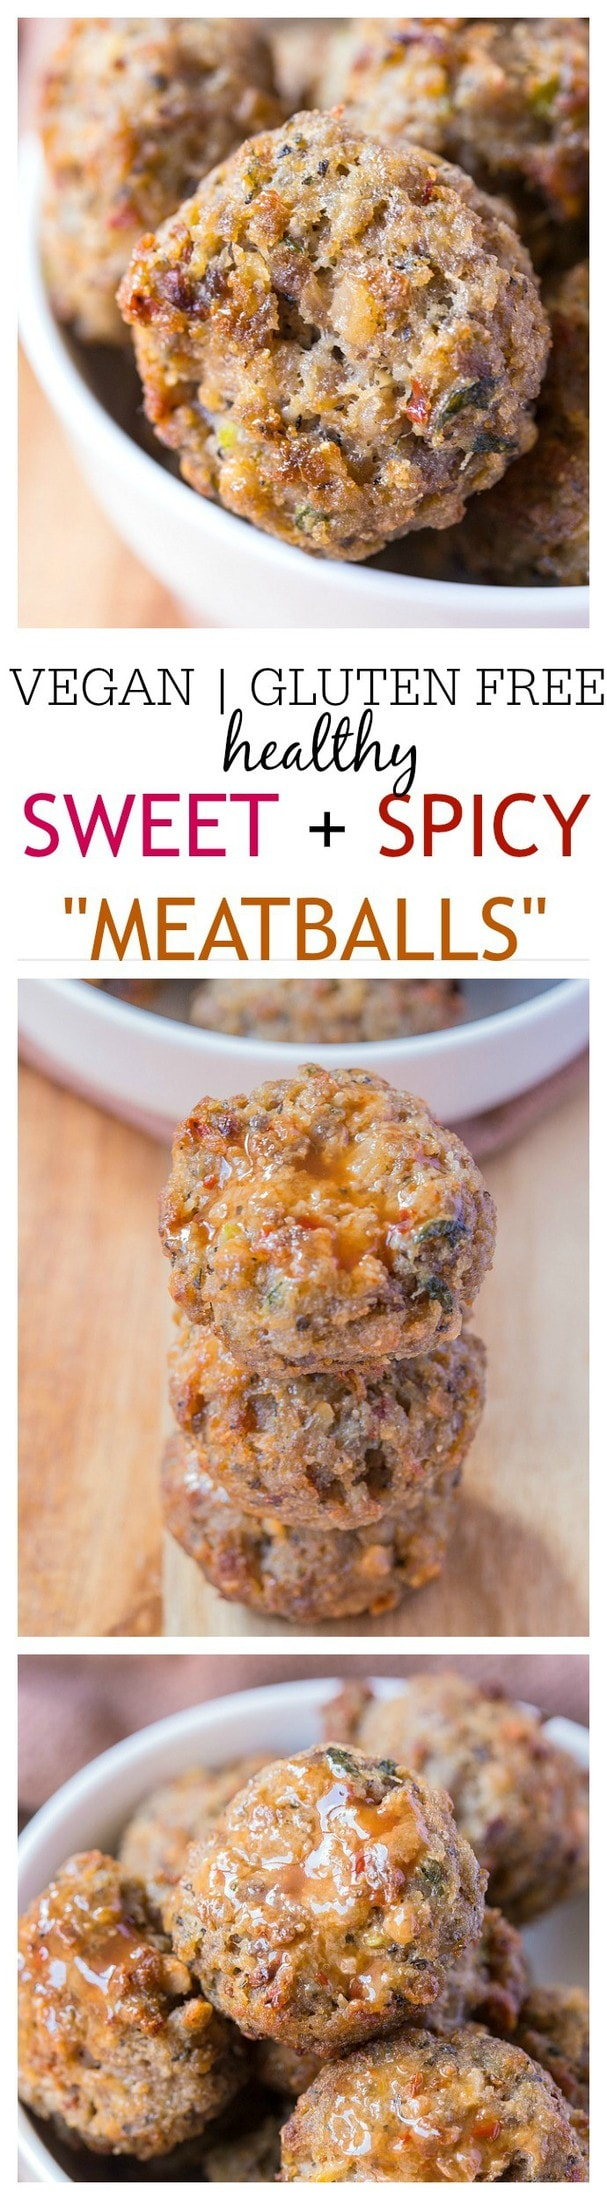 Vegan Sweet and Spicy Meatballs- These sweet and spicy 'meatballs' are a flavour explosion and they contain no meat! Perfect to whip up in a big batch, they are gluten free, vegan, dairy free and perfect for meatless Monday or a meat free meal! @thebigmansworld - thebigmansworld.com